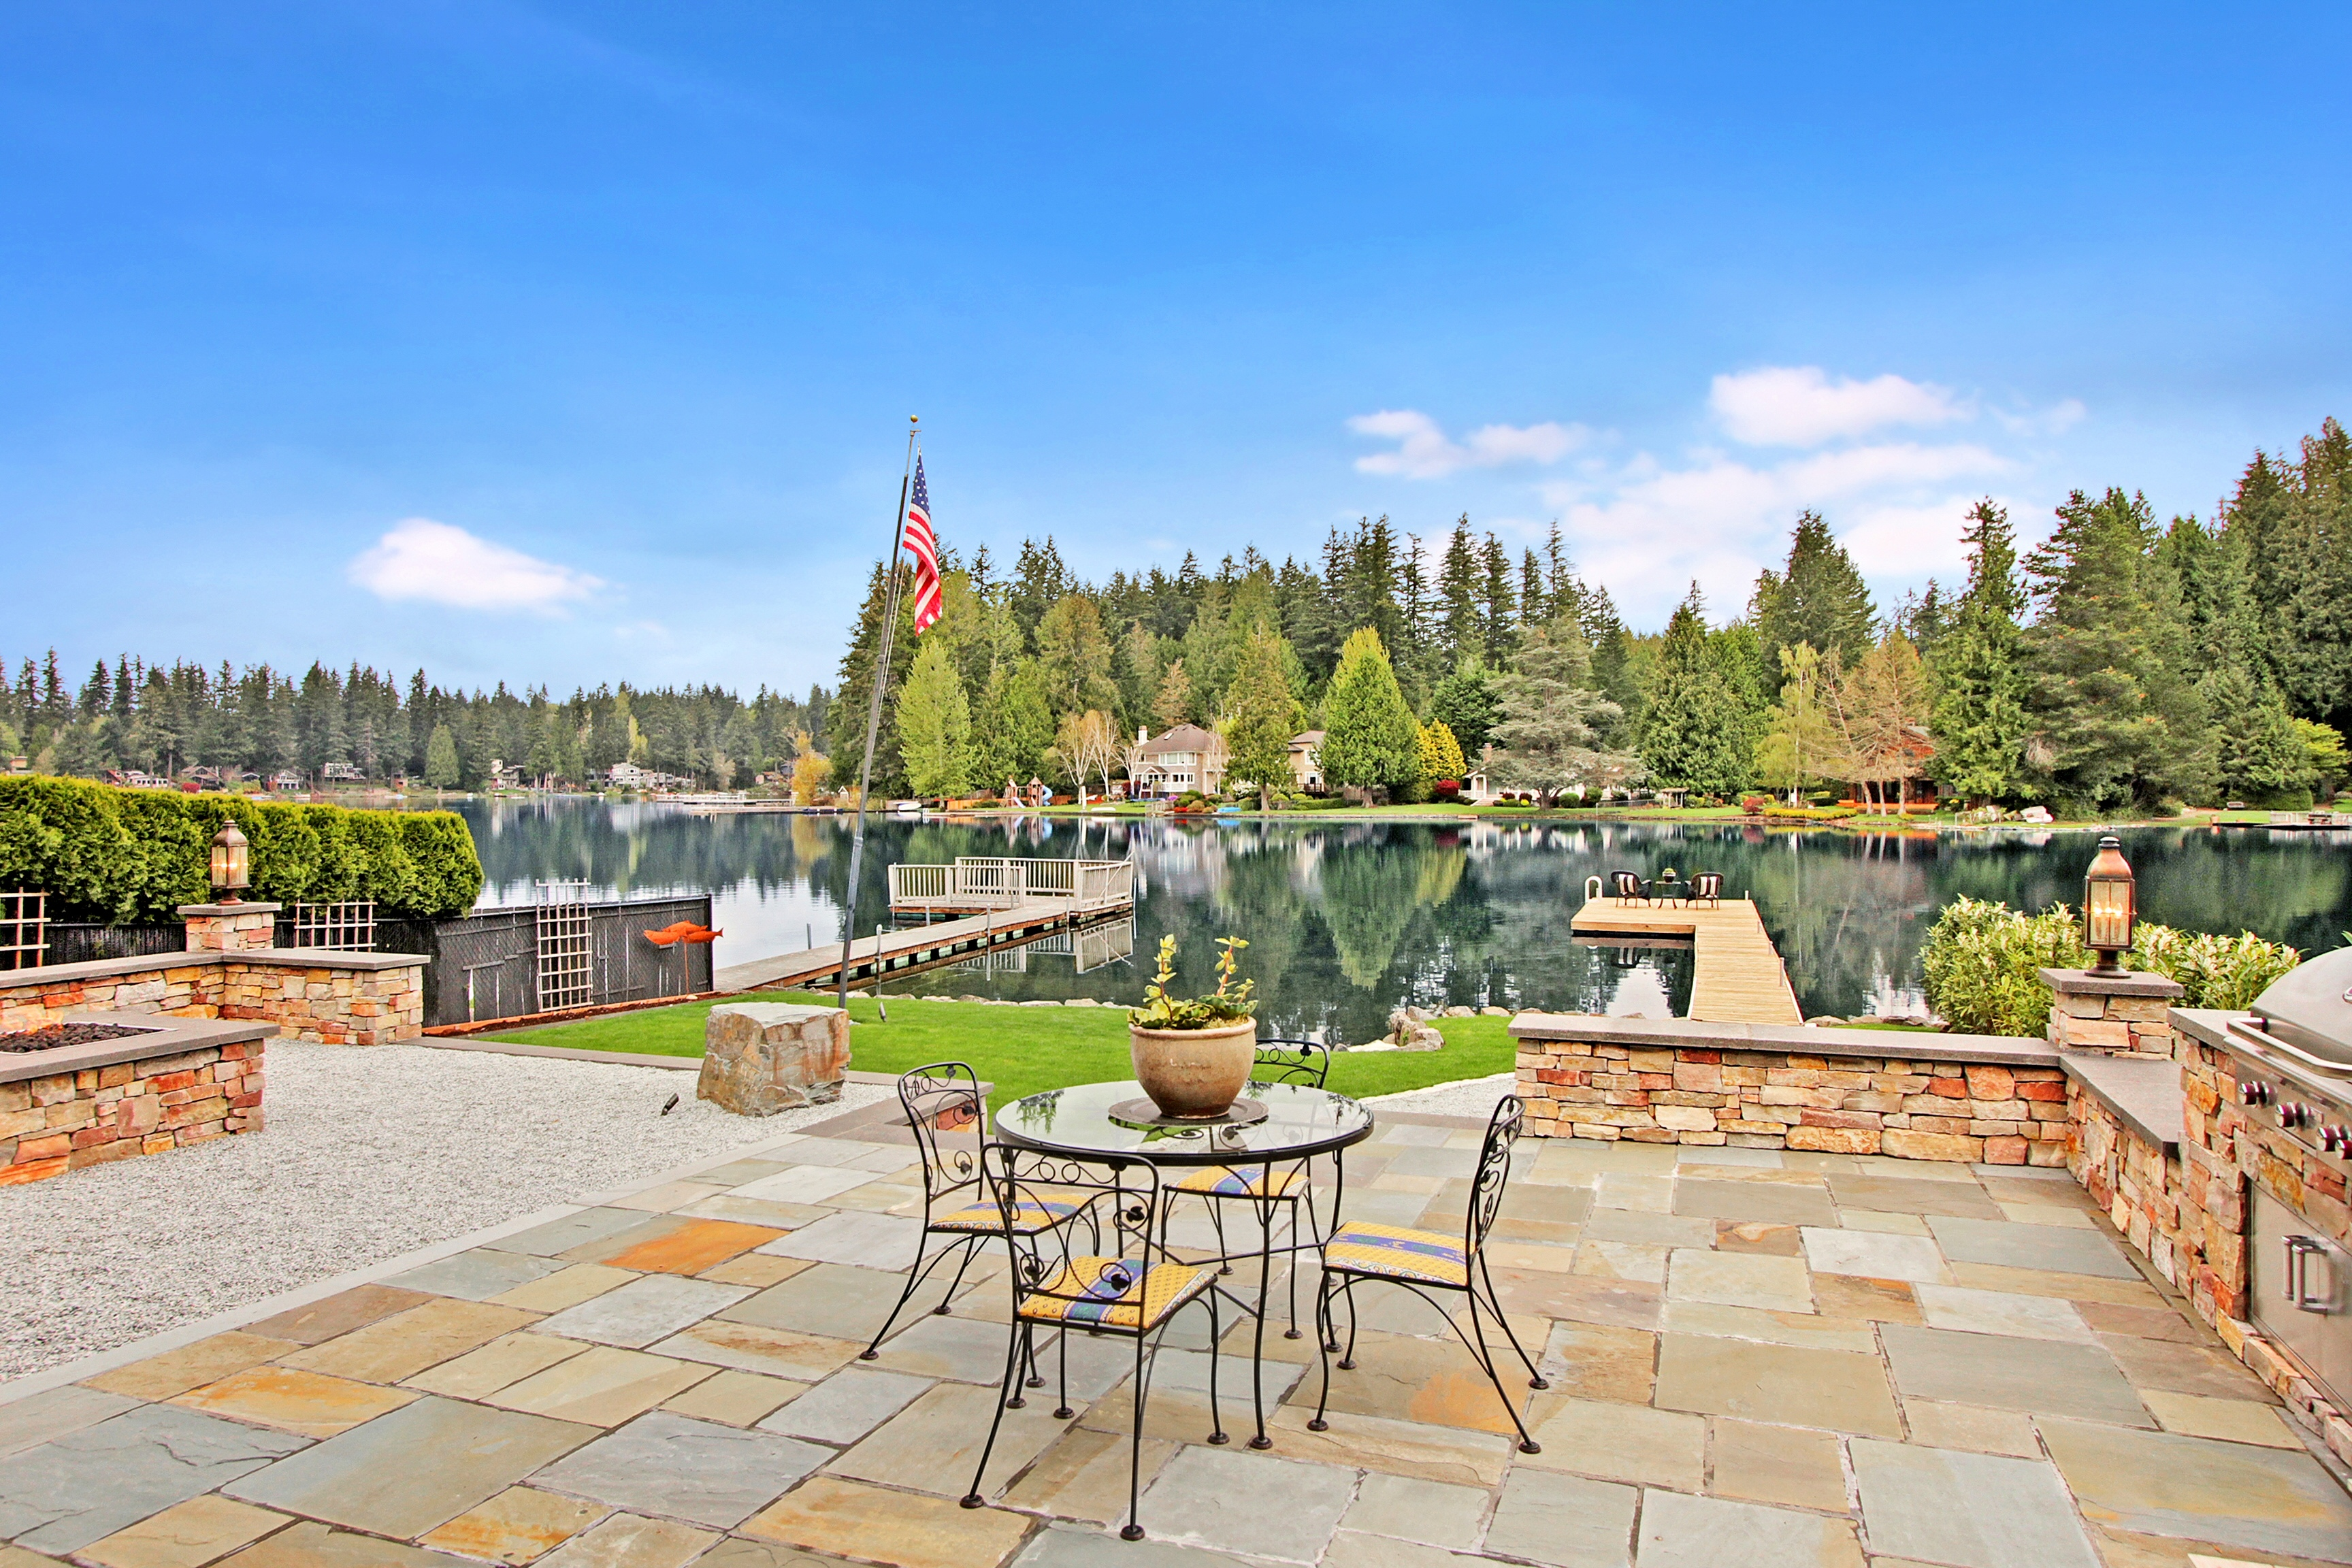 2742 222nd Avenue Southeast, Sammamish, WA is listed for $1,928,000. Go to https://www.compass.com/listing/2742-222nd-avenue-southeast-sammamish-wa-98075/253607308993580209/ to view the full listing. (Photo provided by Compass)